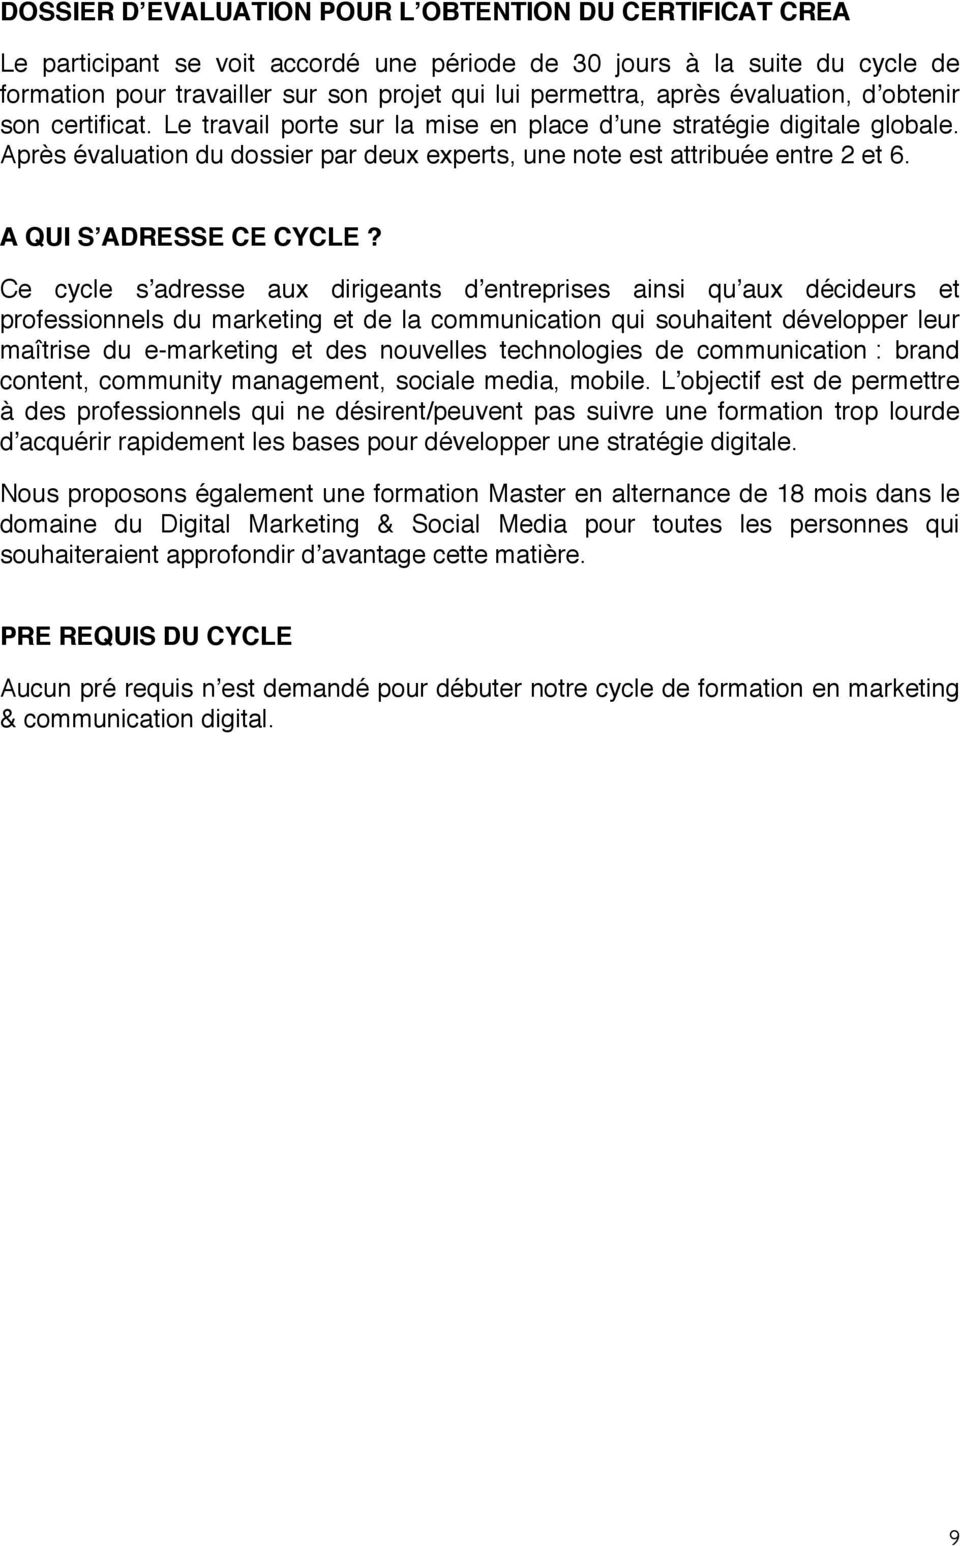 A QUI S'ADRESSE CE CYCLE?